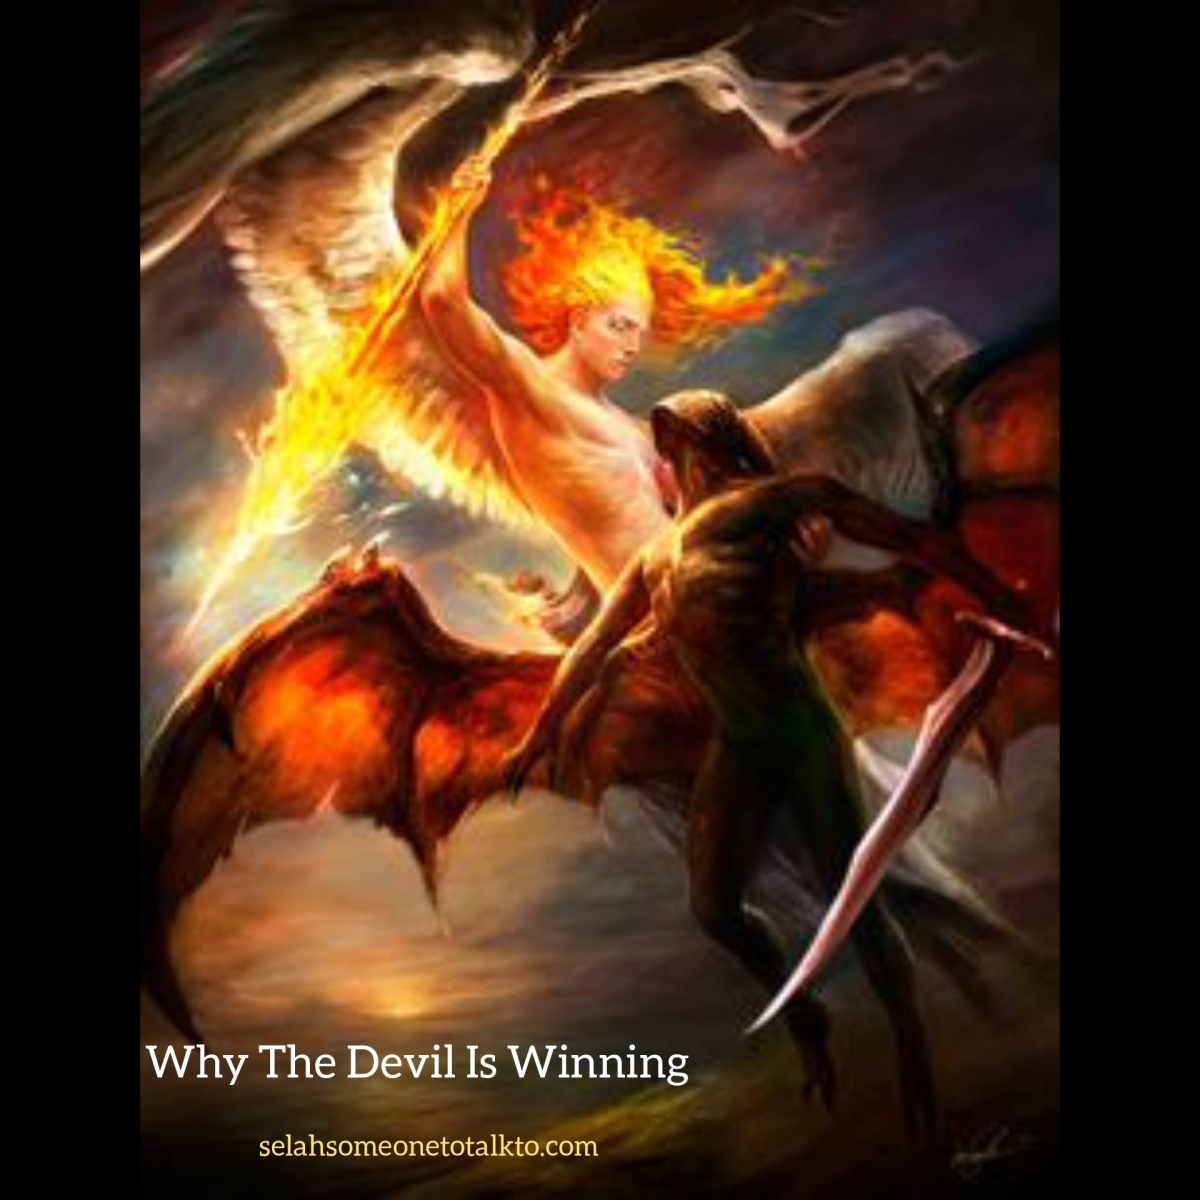 Why The Devil Is Winning